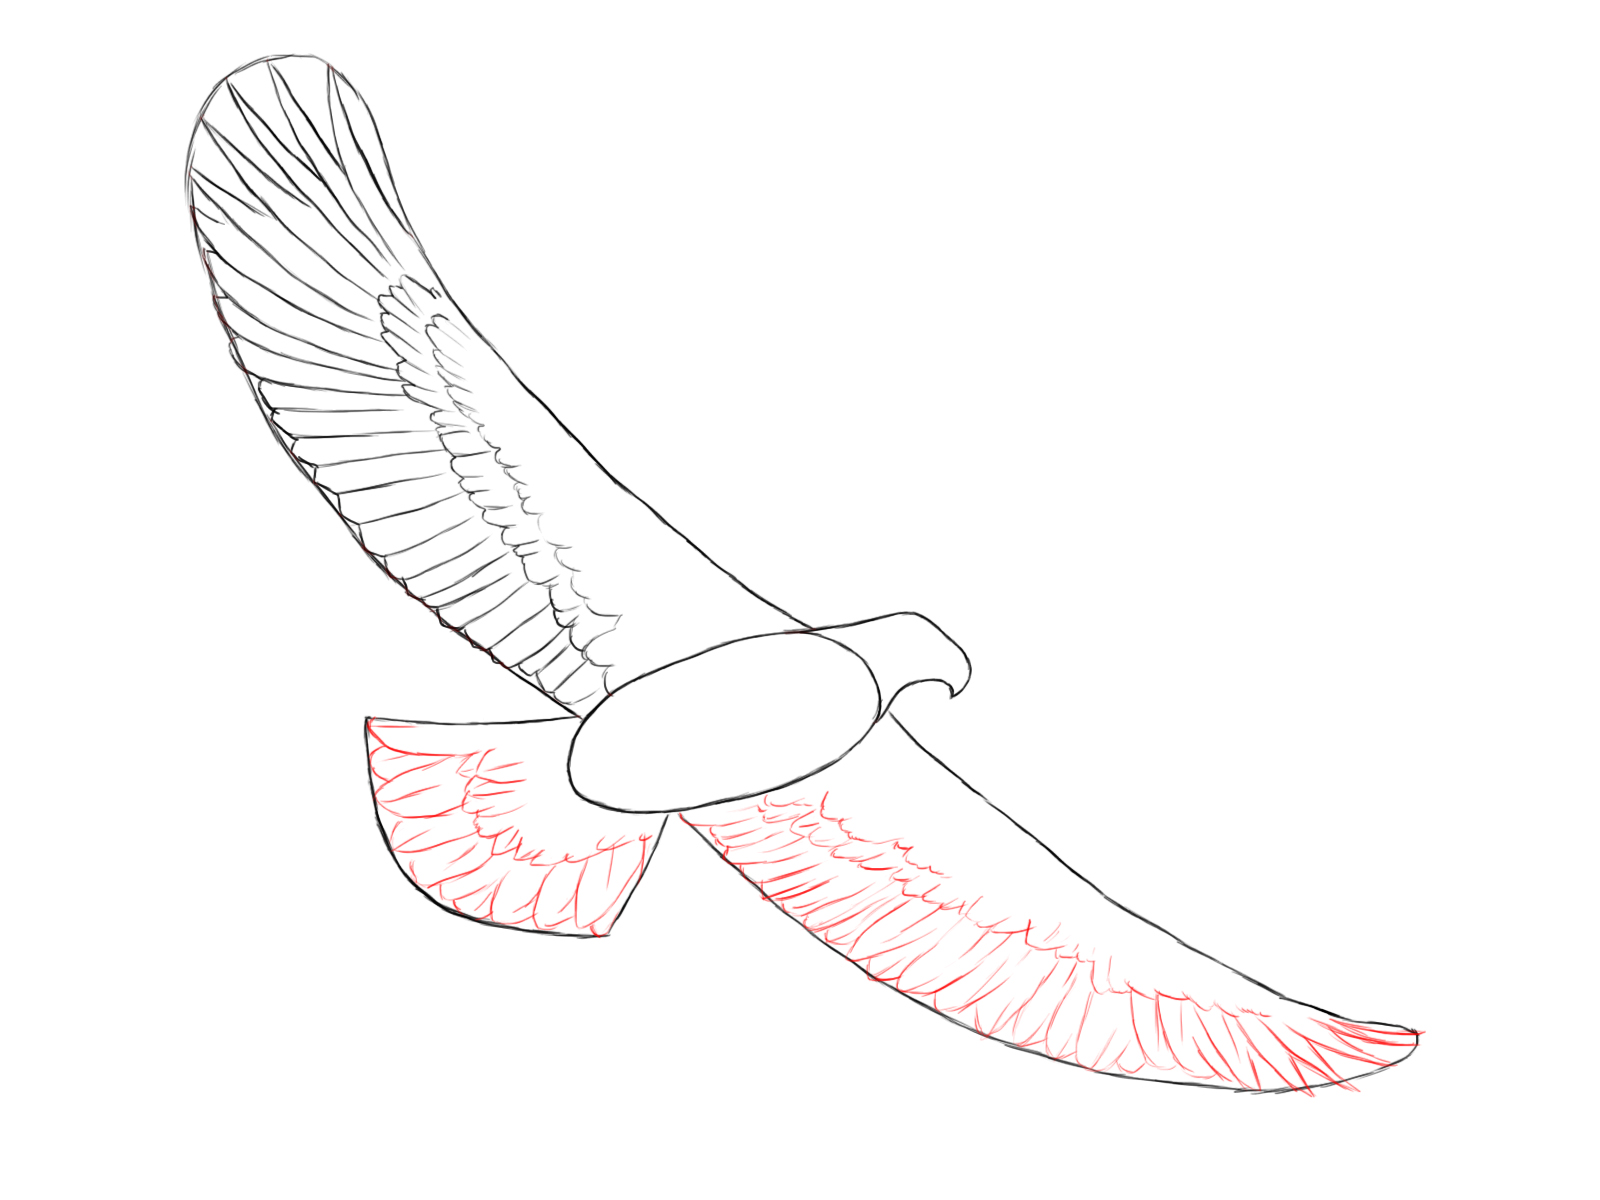 Eagle drawing images at getdrawings free for personal use